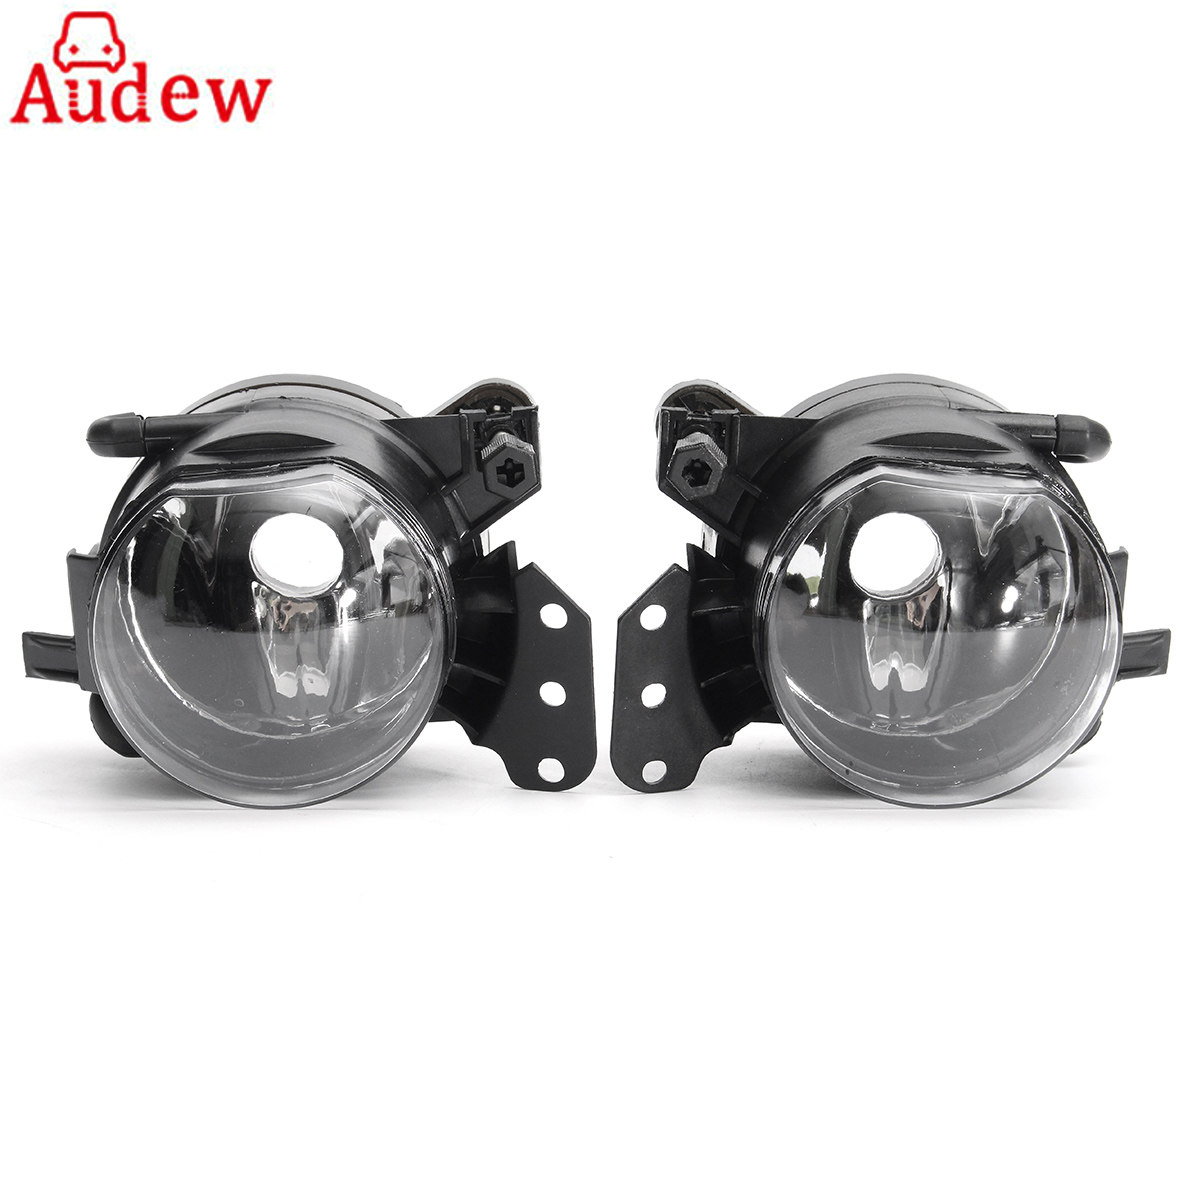 Pair Car Front Fog Lights Lamps Housing Lens Clear For BMW E60 E90 E63 E46 323i 325i 525i pair new high quality front fog lamp lights driving lamps clear lens car styling for bmw e39 5 series 2001 2003